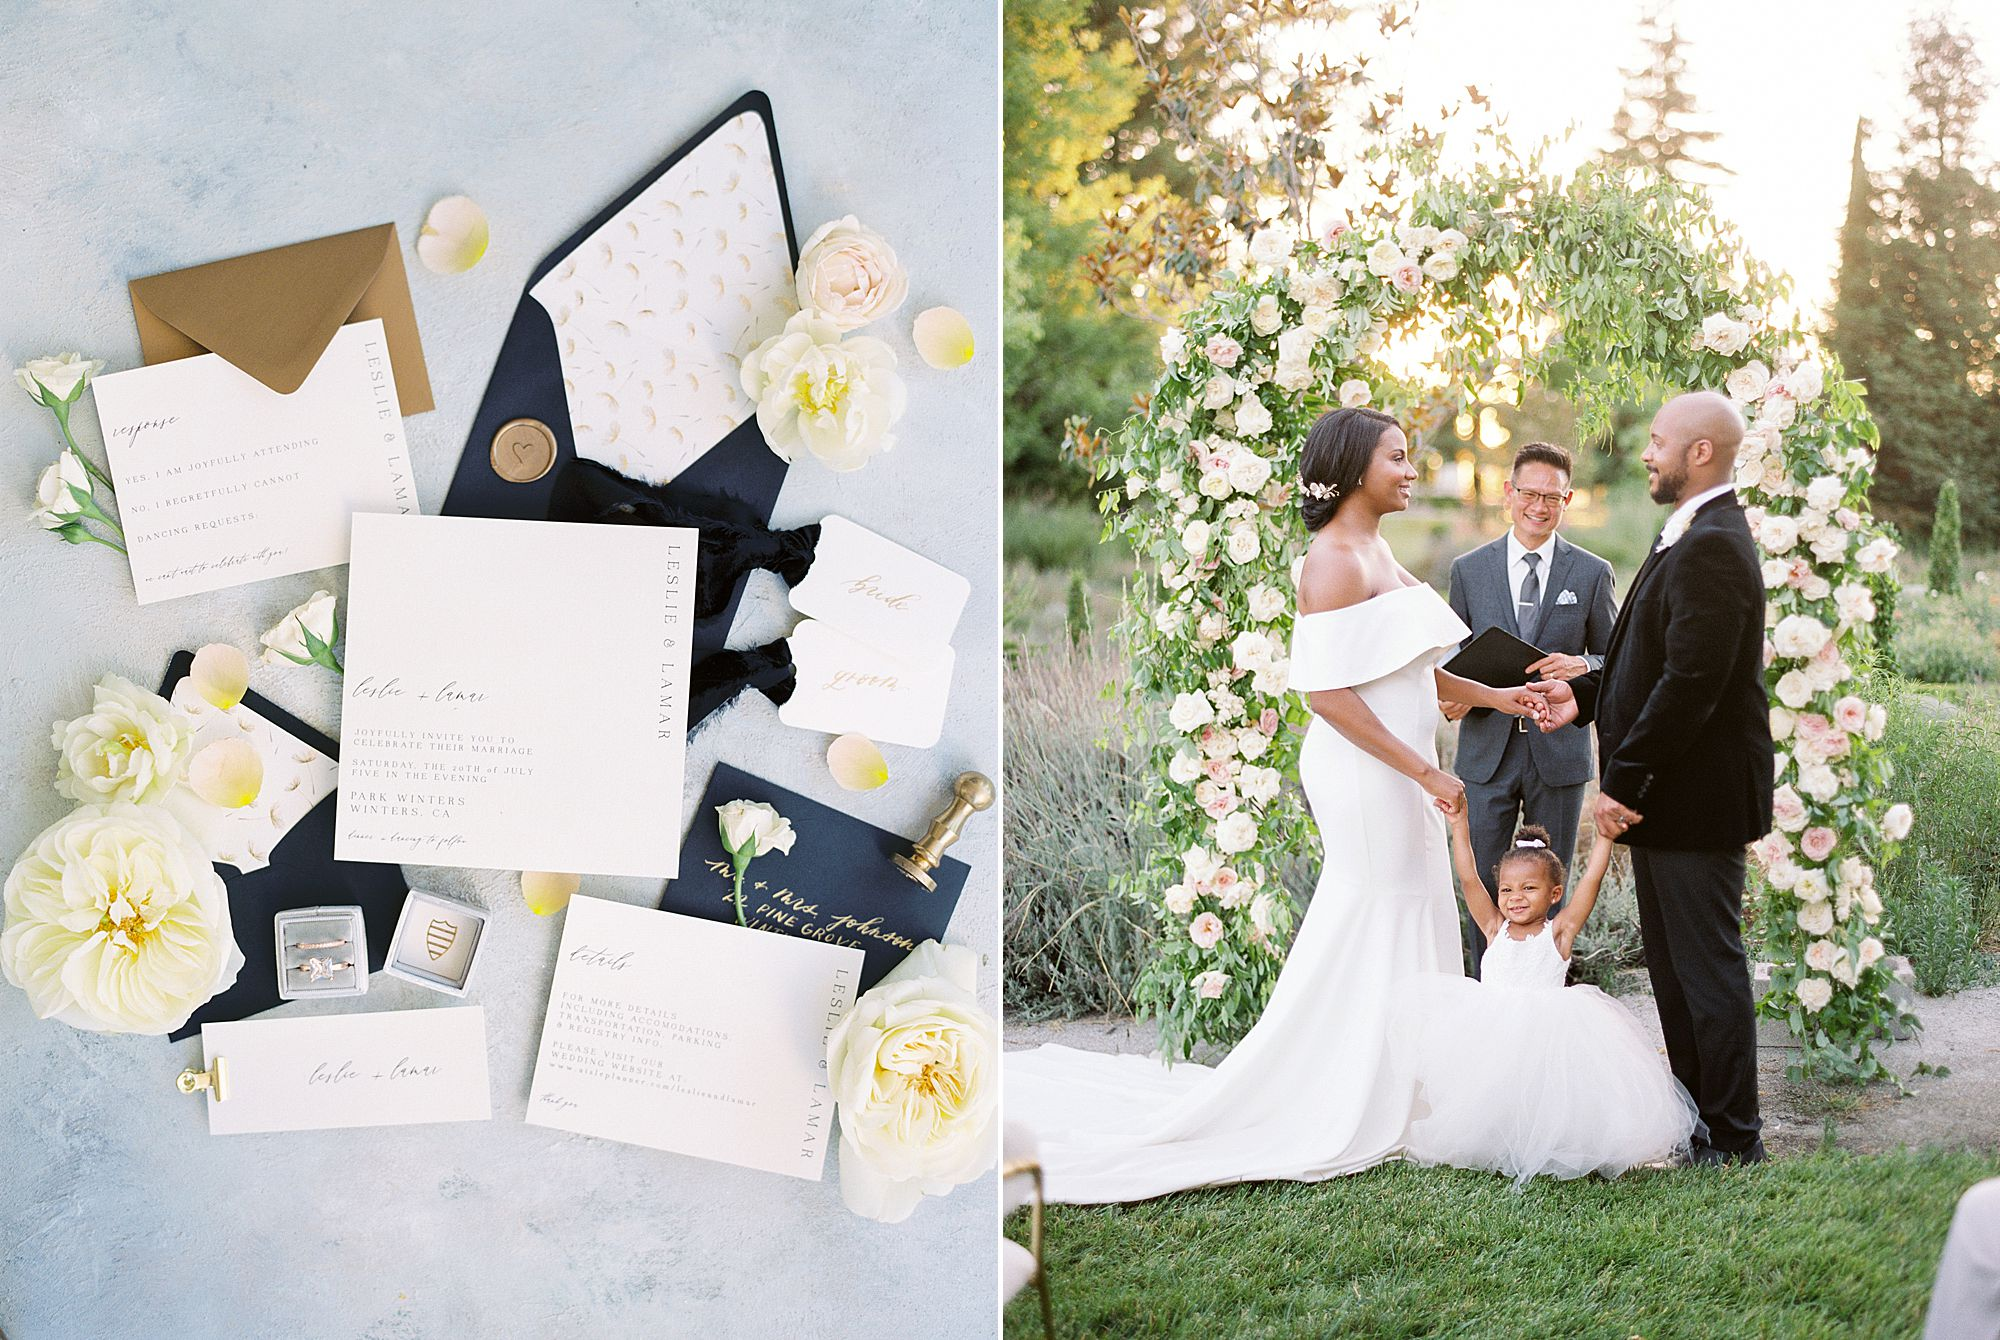 Park Winters Micro-Wedding Inspiration on Style Me Pretty - Stephanie Teague Events - Ashley Baumgartner - Park Winters Wedding - Black Tie Wedding - Micro-Wedding Sacramento Photographer_0005.jpg